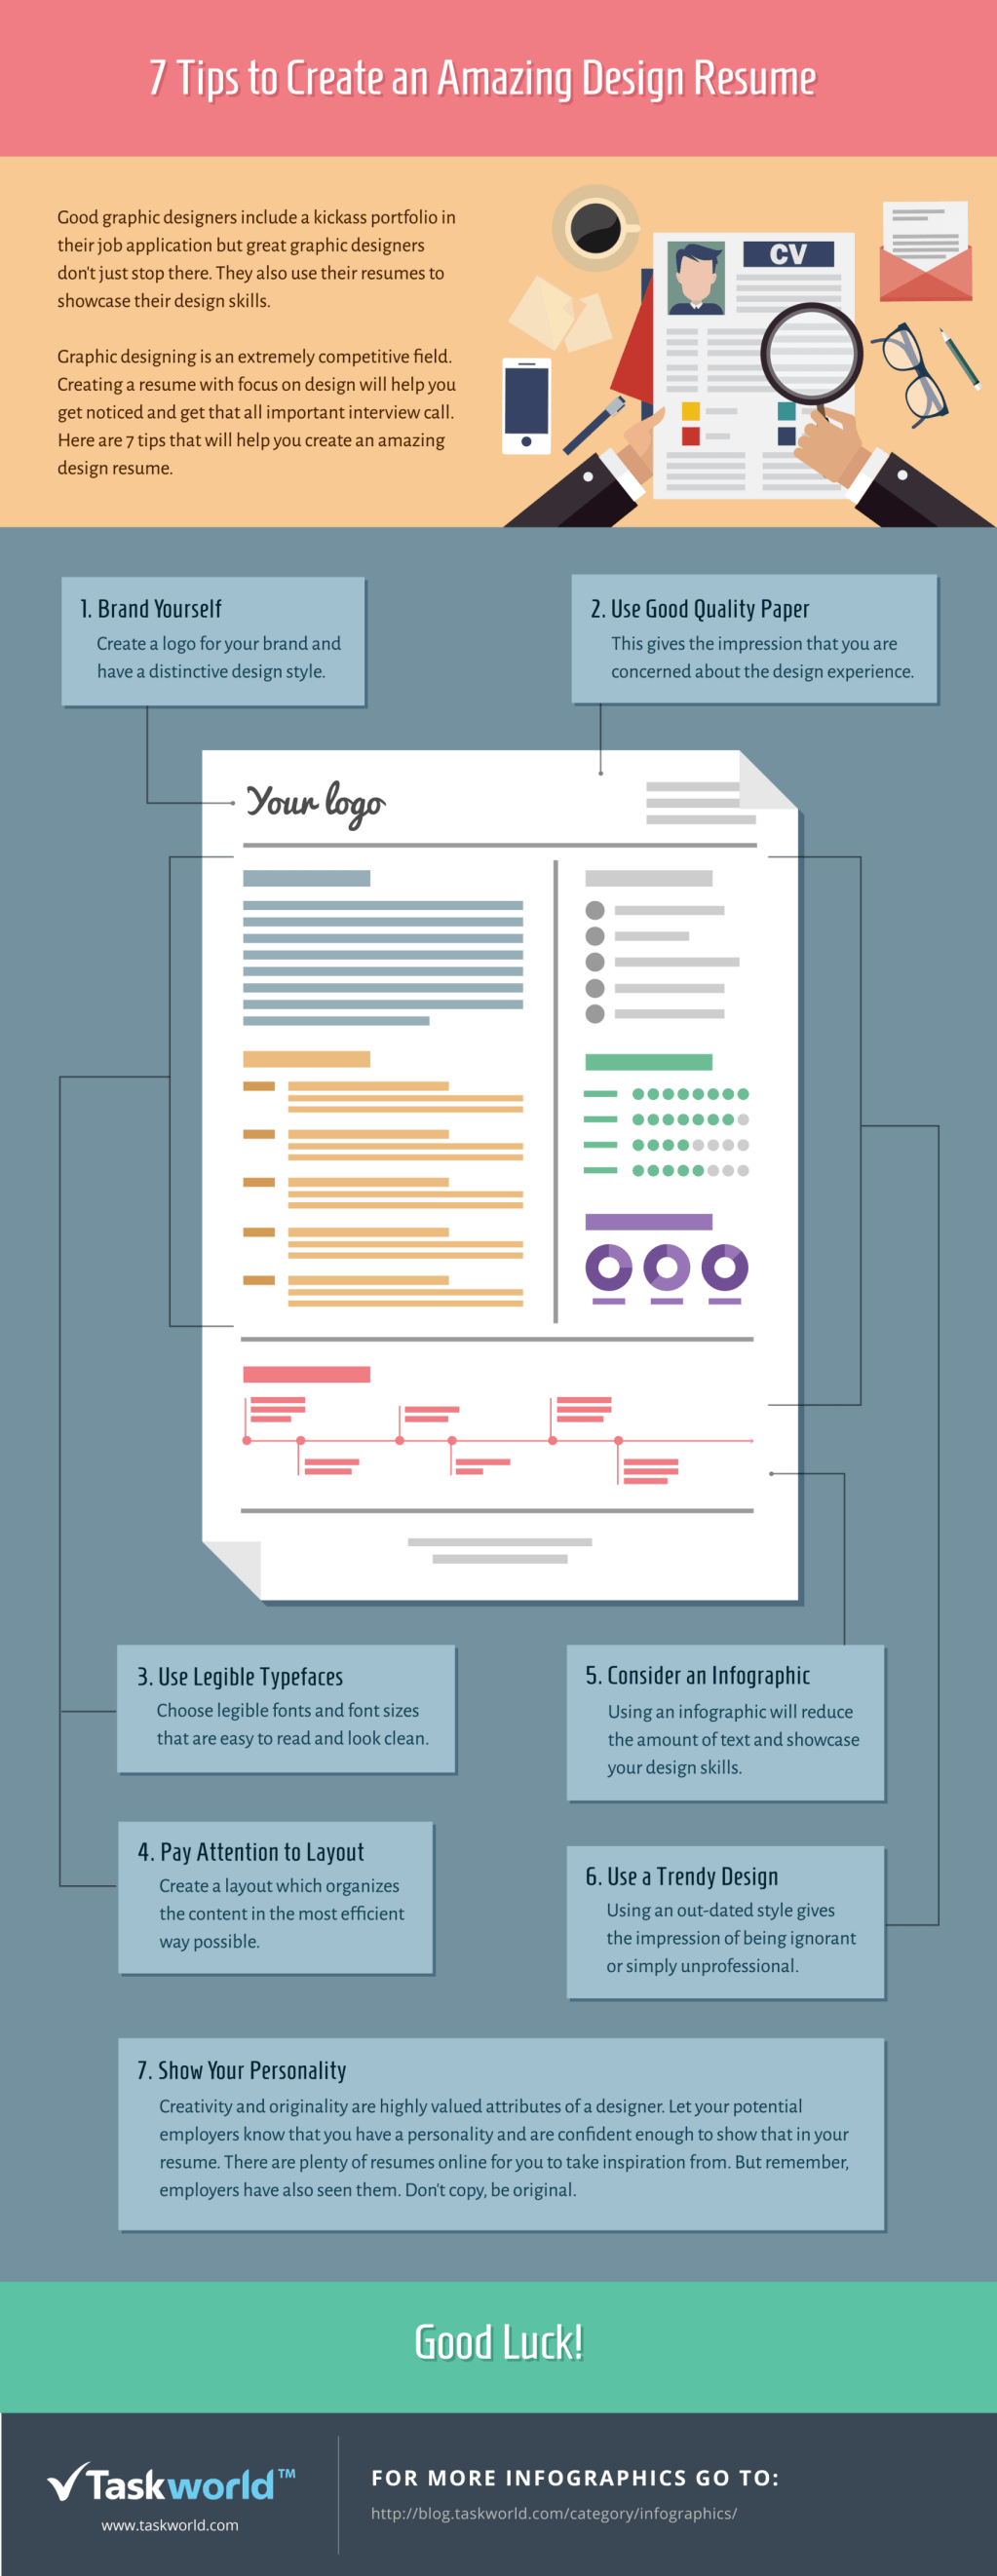 7 Tips To Create An Amazing Design Resume Infographic  Resume Design Tips